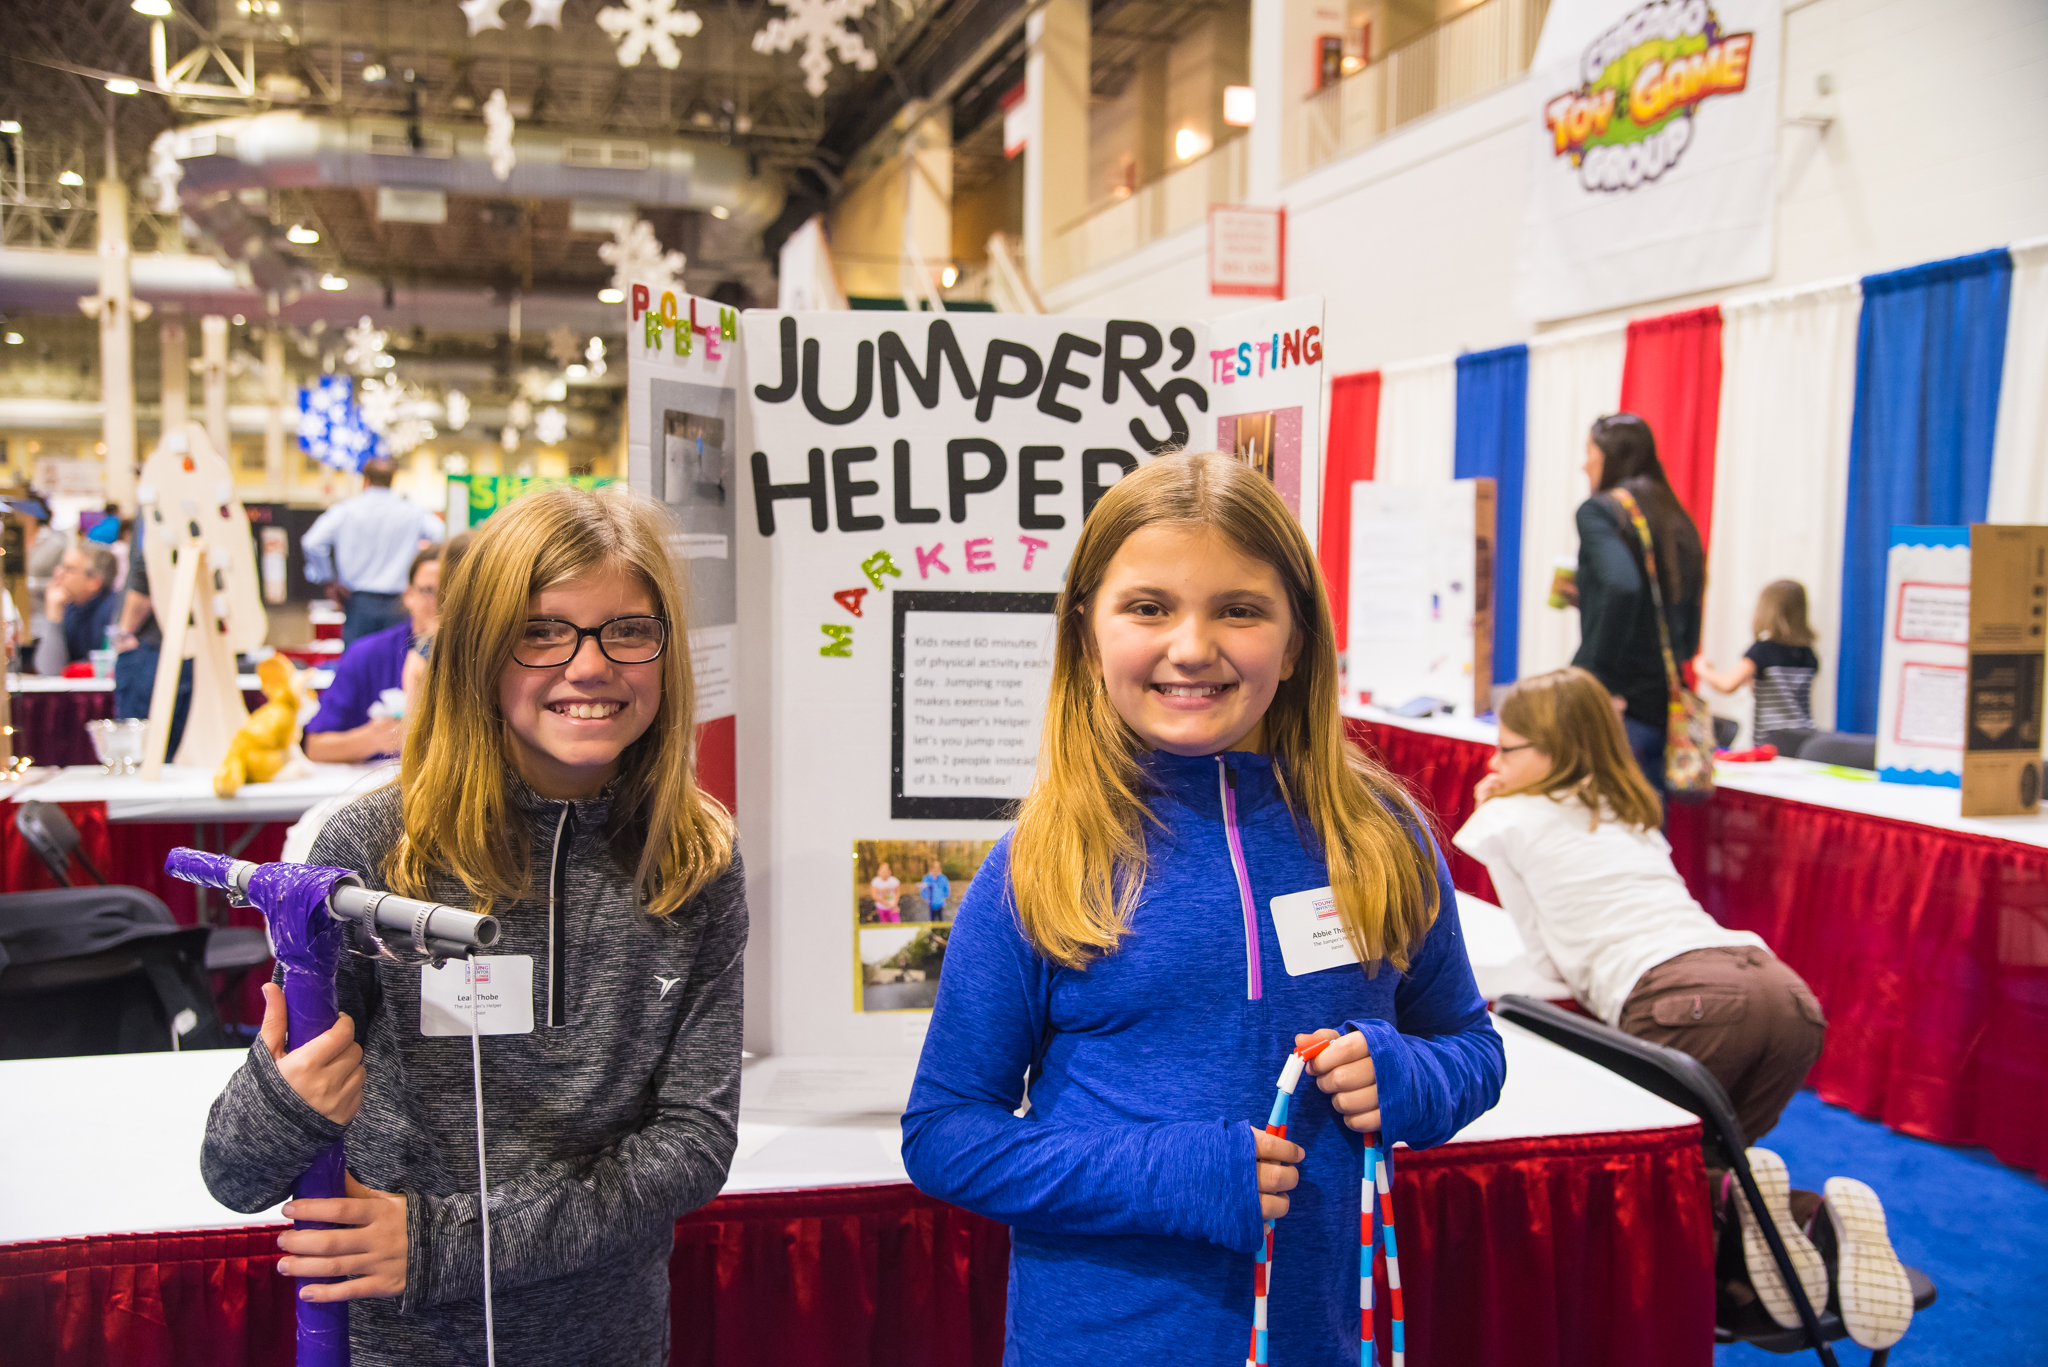 YIC 2017 Jumpers Helper